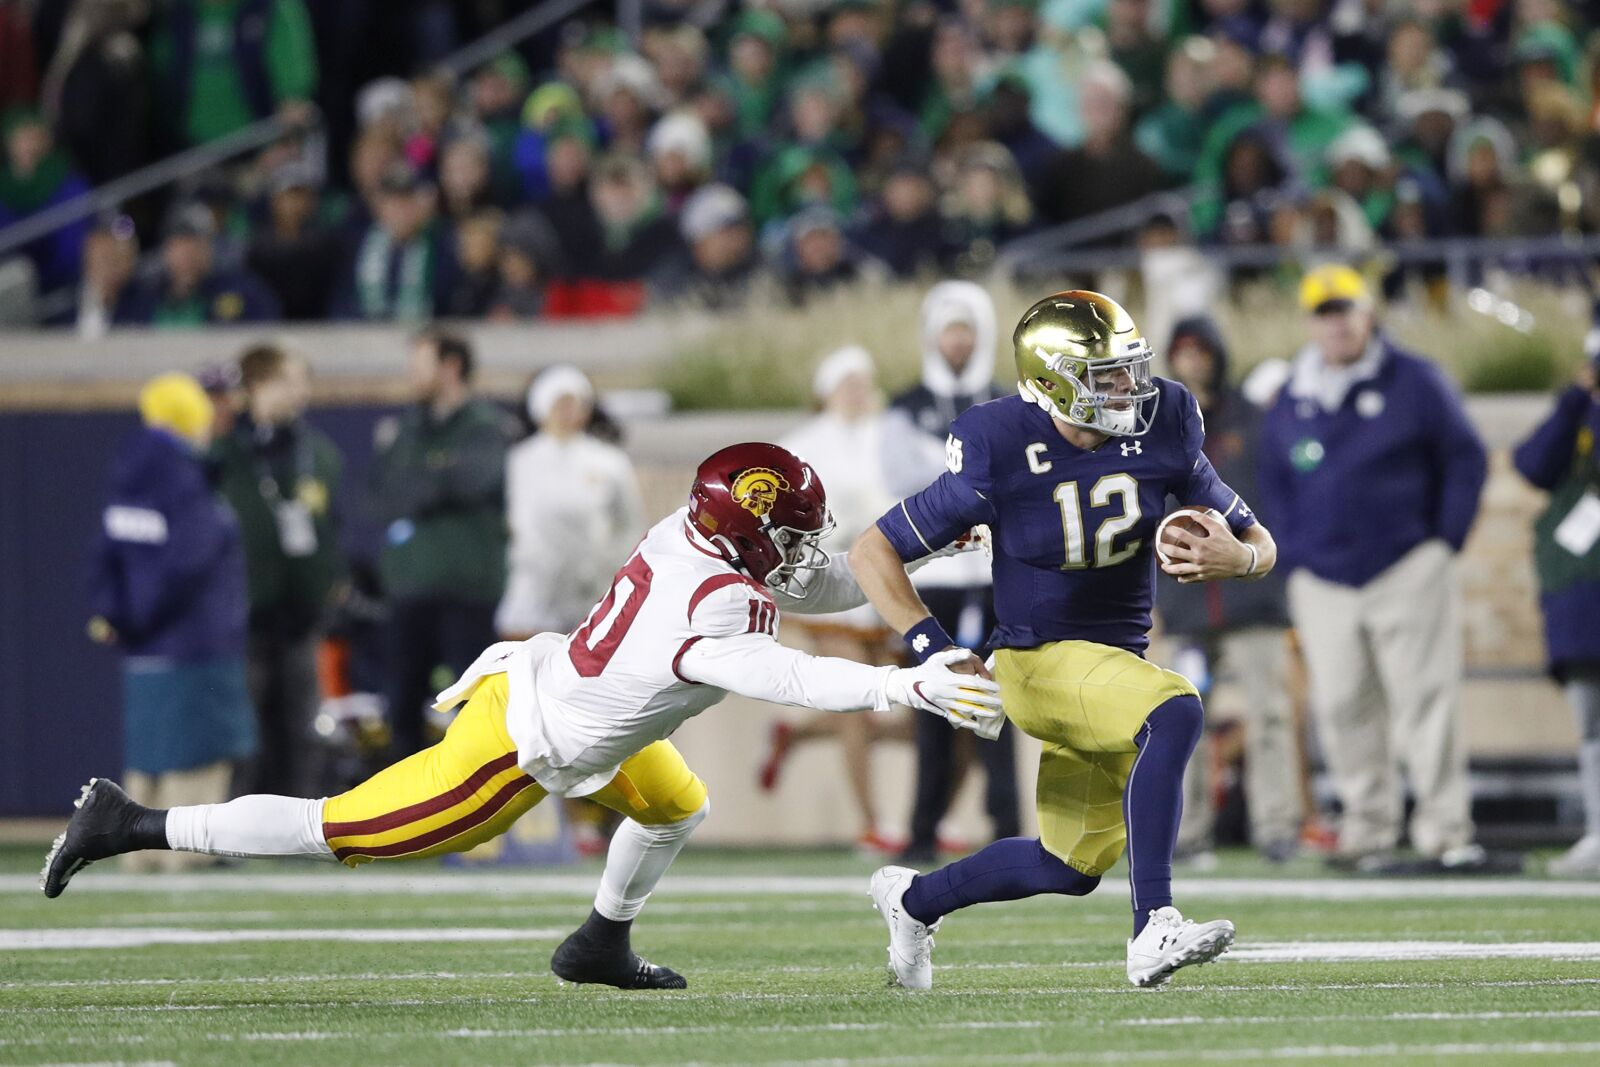 Notre Dame: The play that changed everything vs. USC